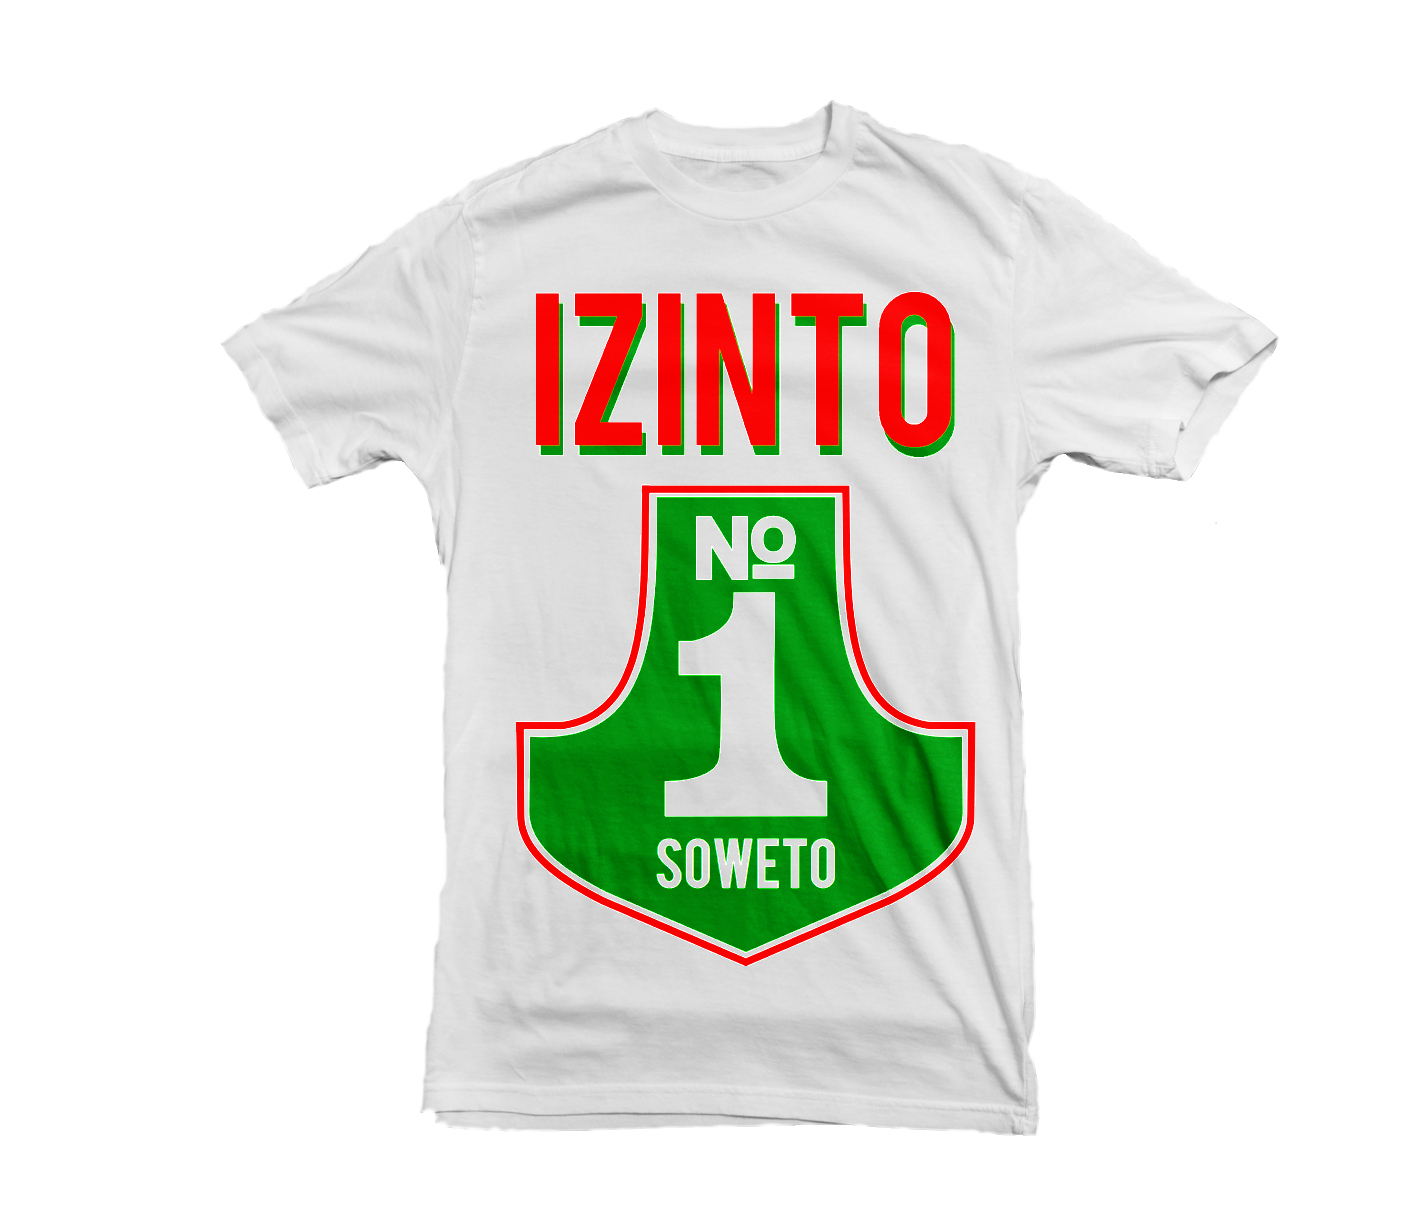 5aeb534c974f White Vintage T-Shirt - Izinto Clothing